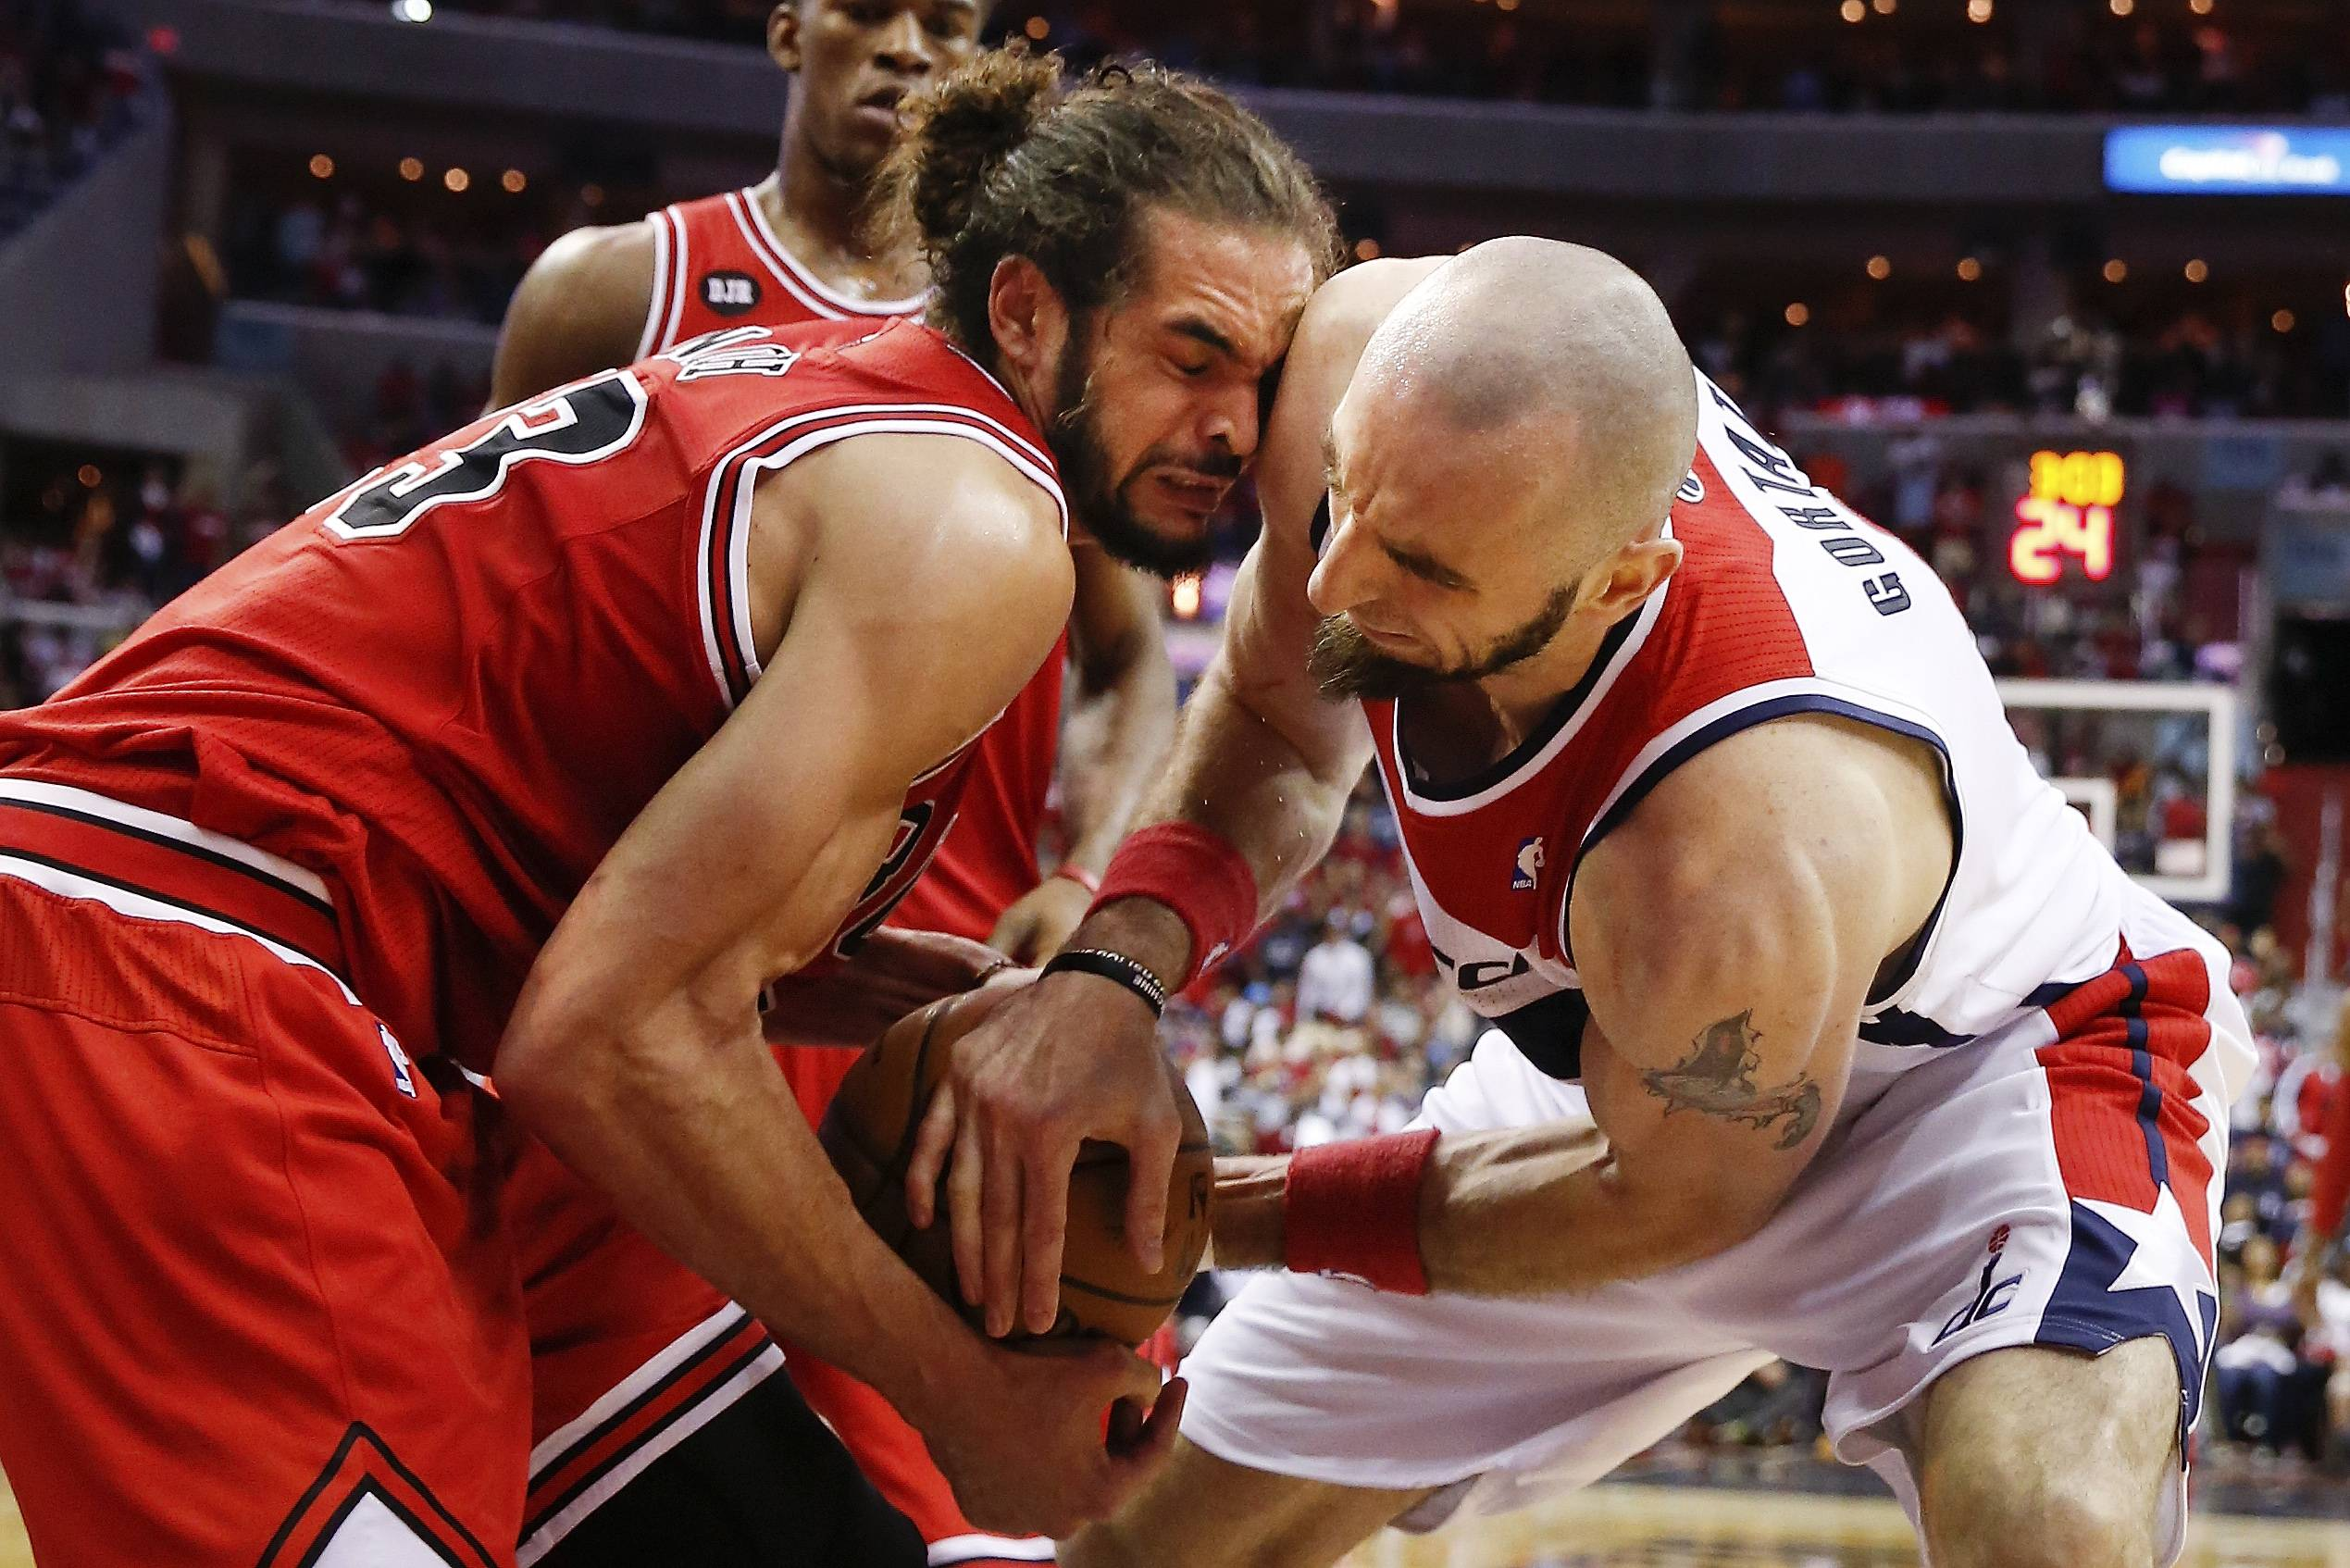 Chicago Bulls center Joakim Noah, left, and Washington Wizards center Marcin Gortat, right, battle for control of the ball during the second half.